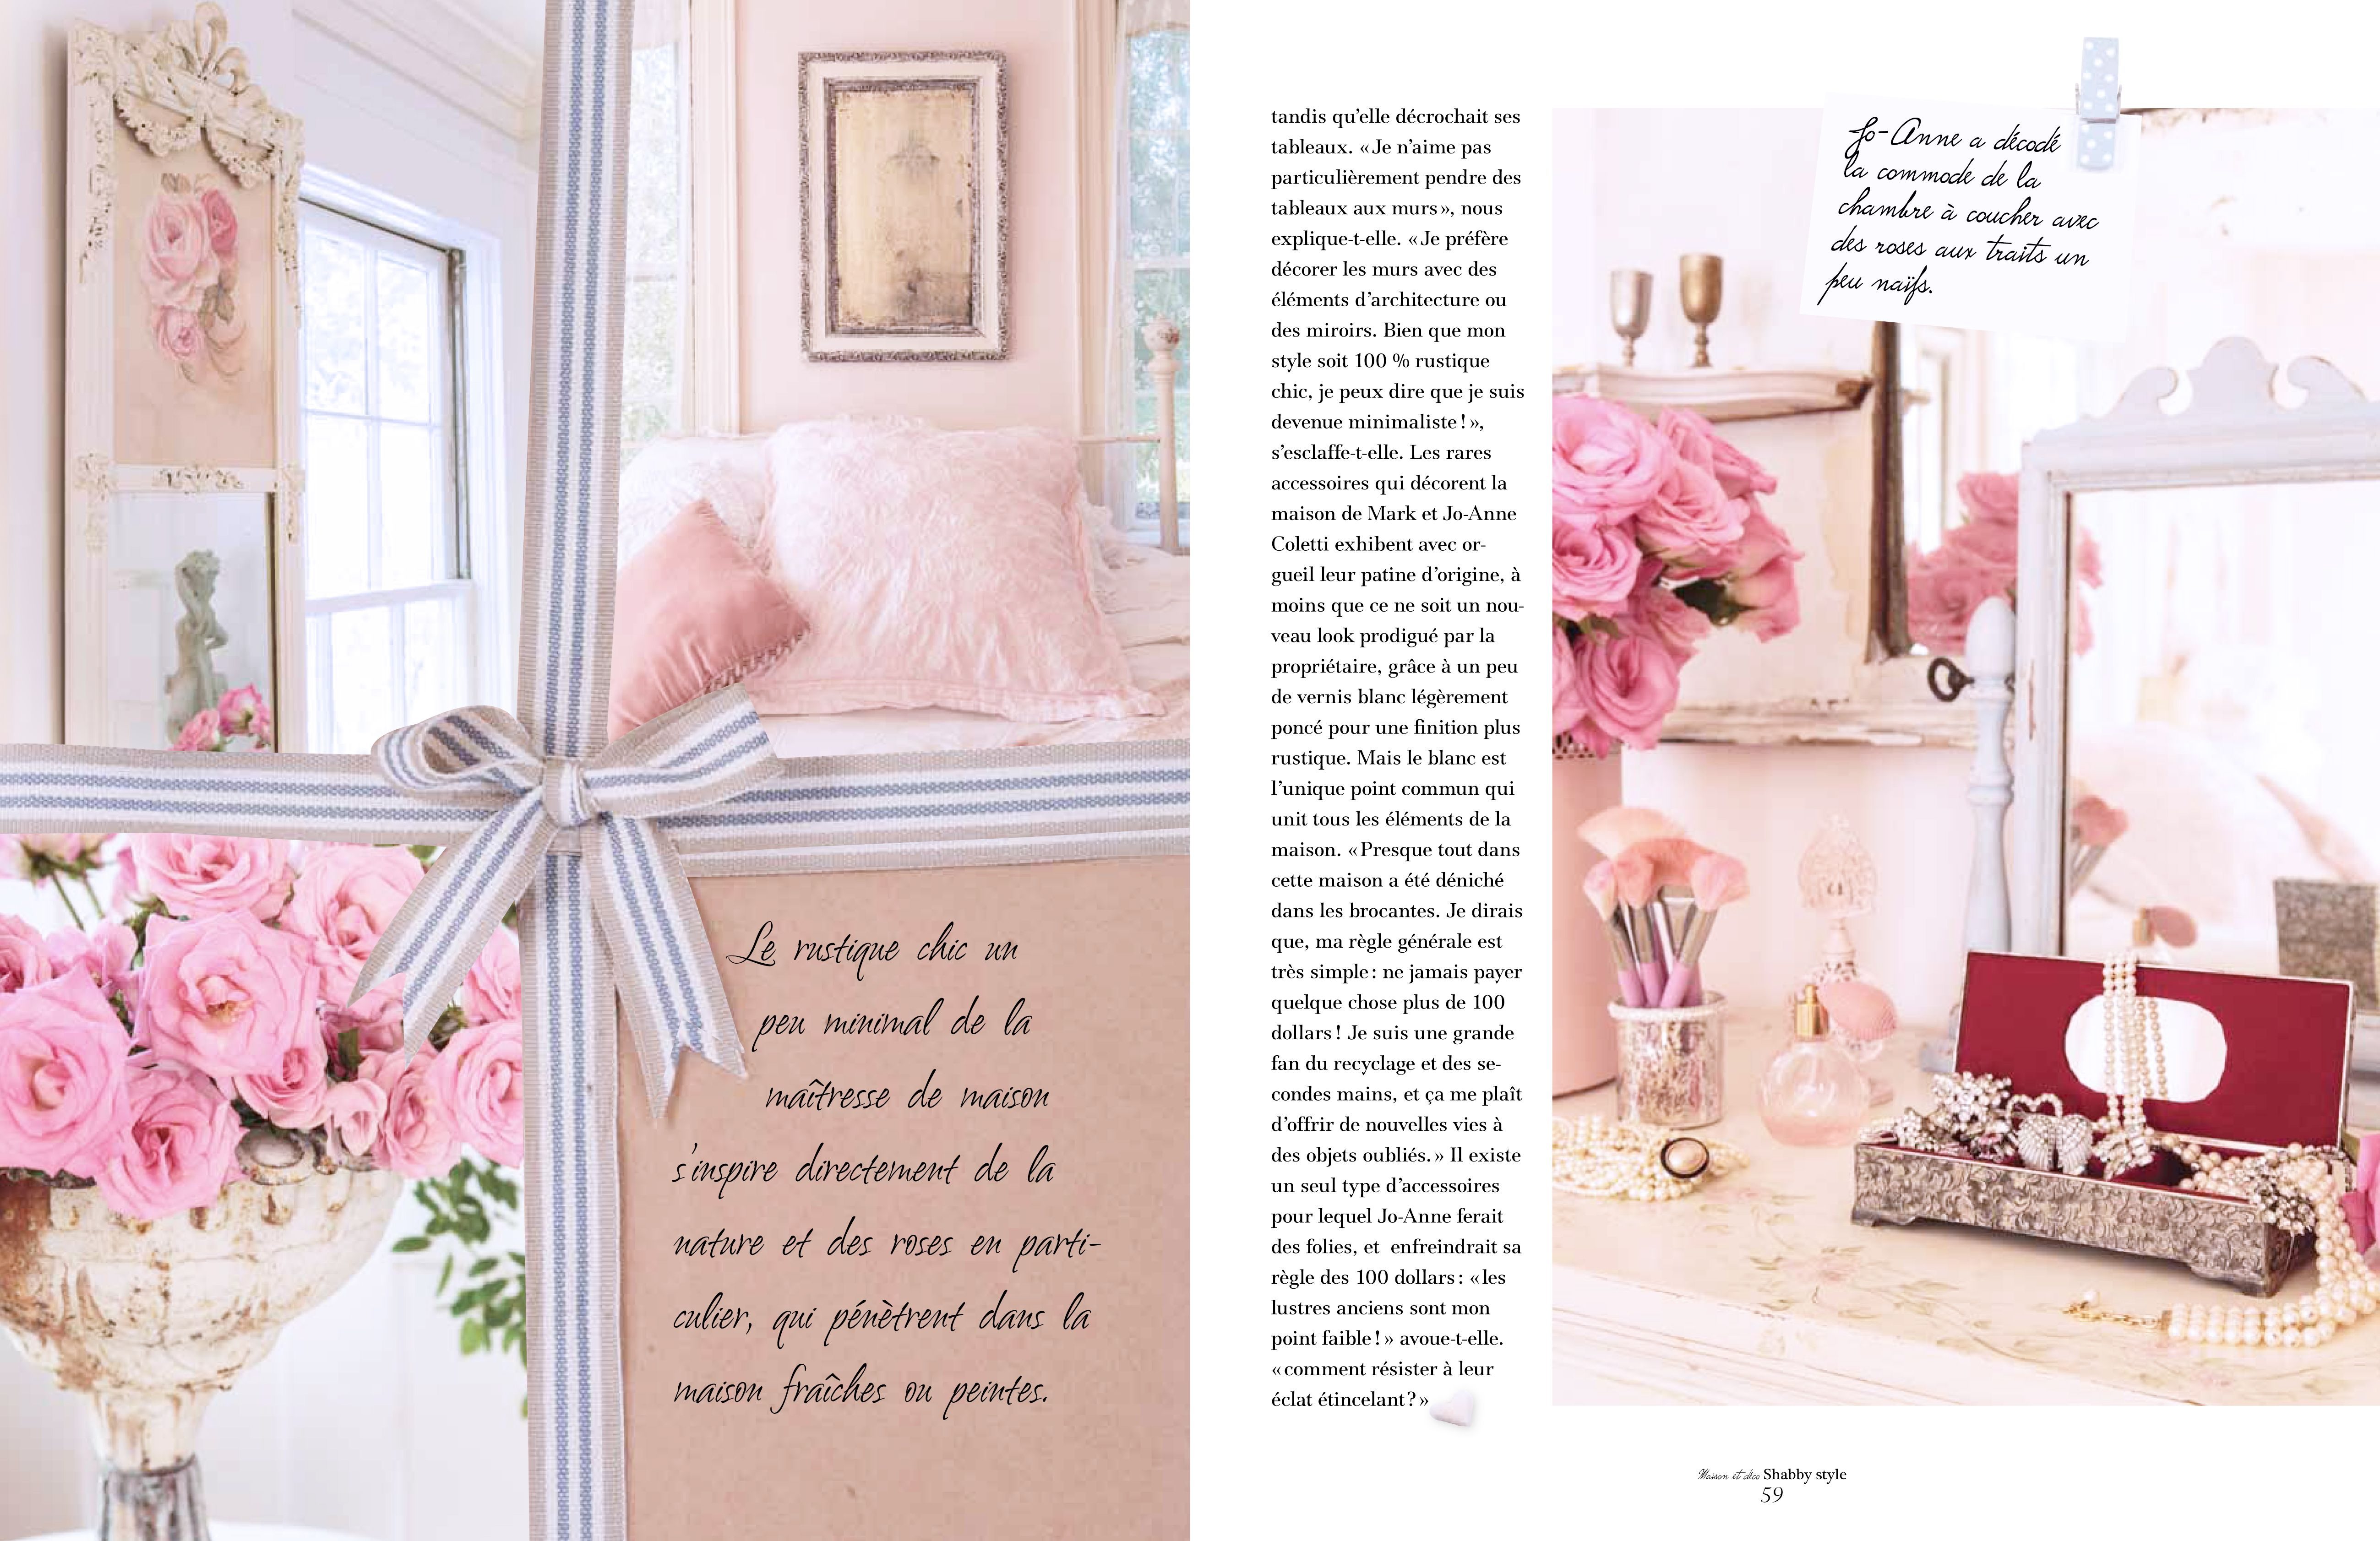 Here are the photos of my home in the european magazine for European homes and style magazine